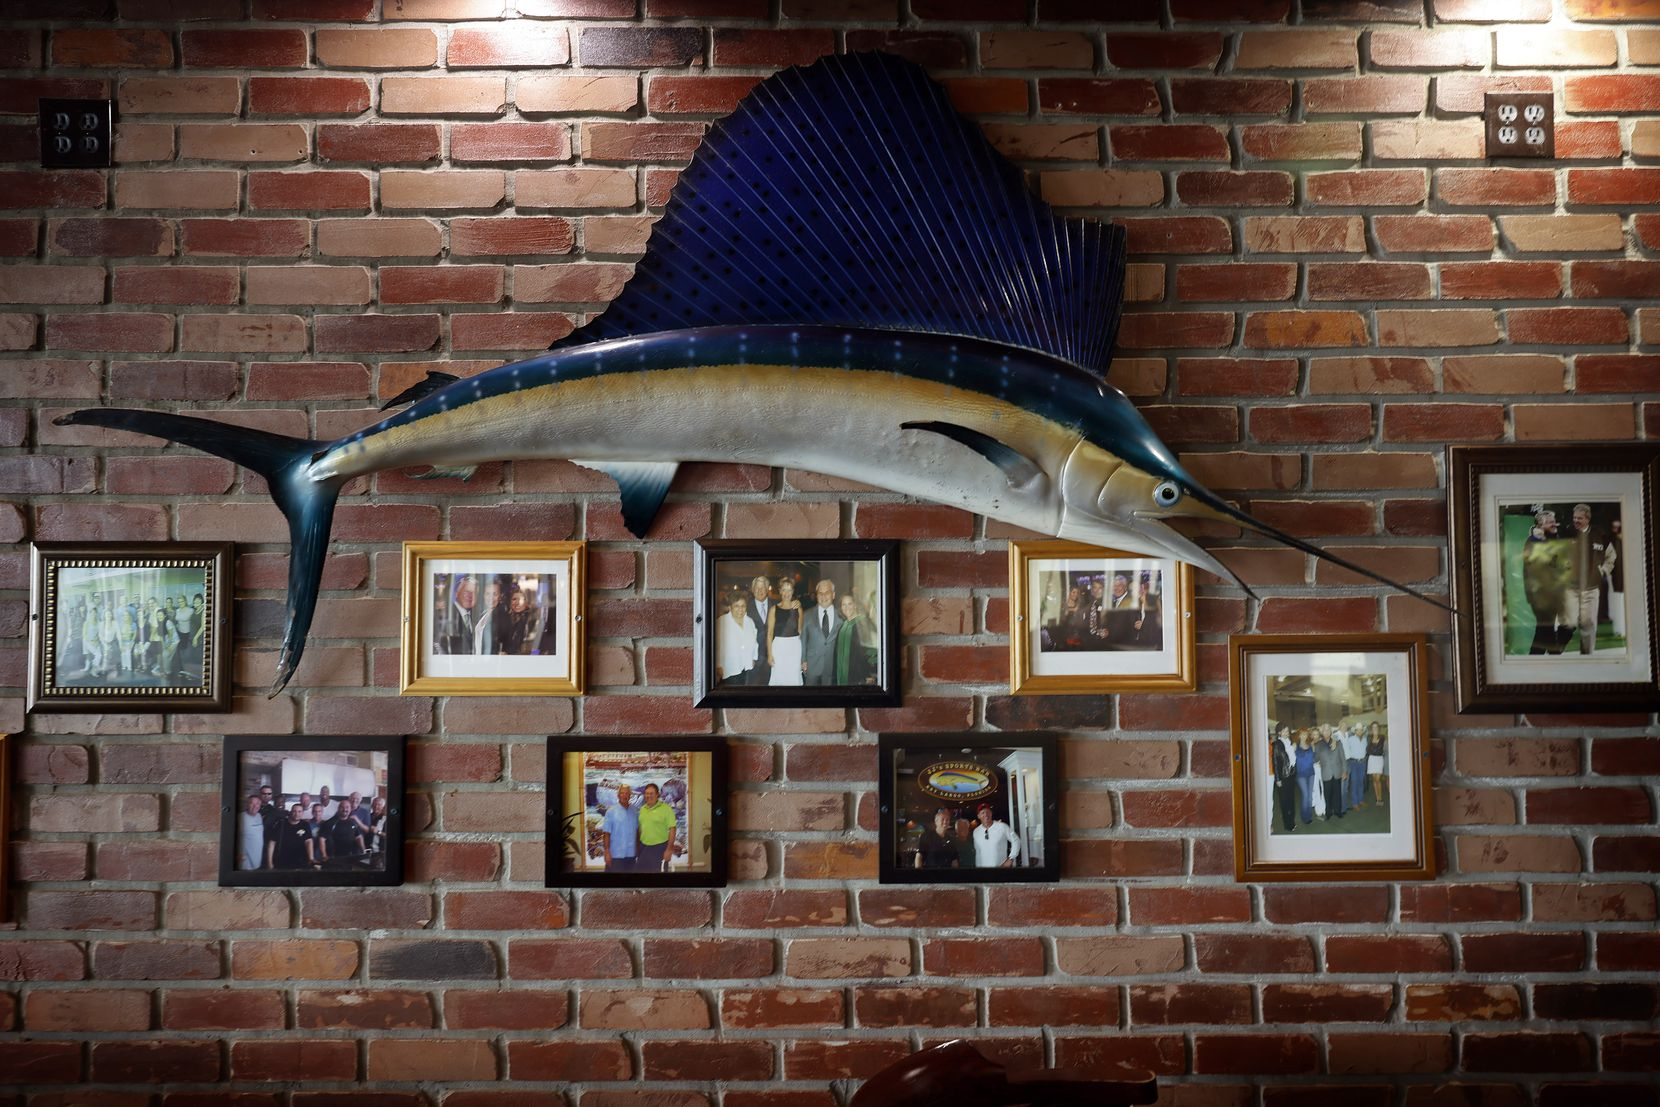 NFL Hall of Fame inductee Jimmy Johnson hung photos of friends in his Big Chill at Fisherman's Cove restaurant in Key Largo, Fla. The former Dallas Cowboys head coach and current FOX NFL SUNDAY analyst was voted into the 2020 Hall of Fame class and will be inducted in Canton this summer.